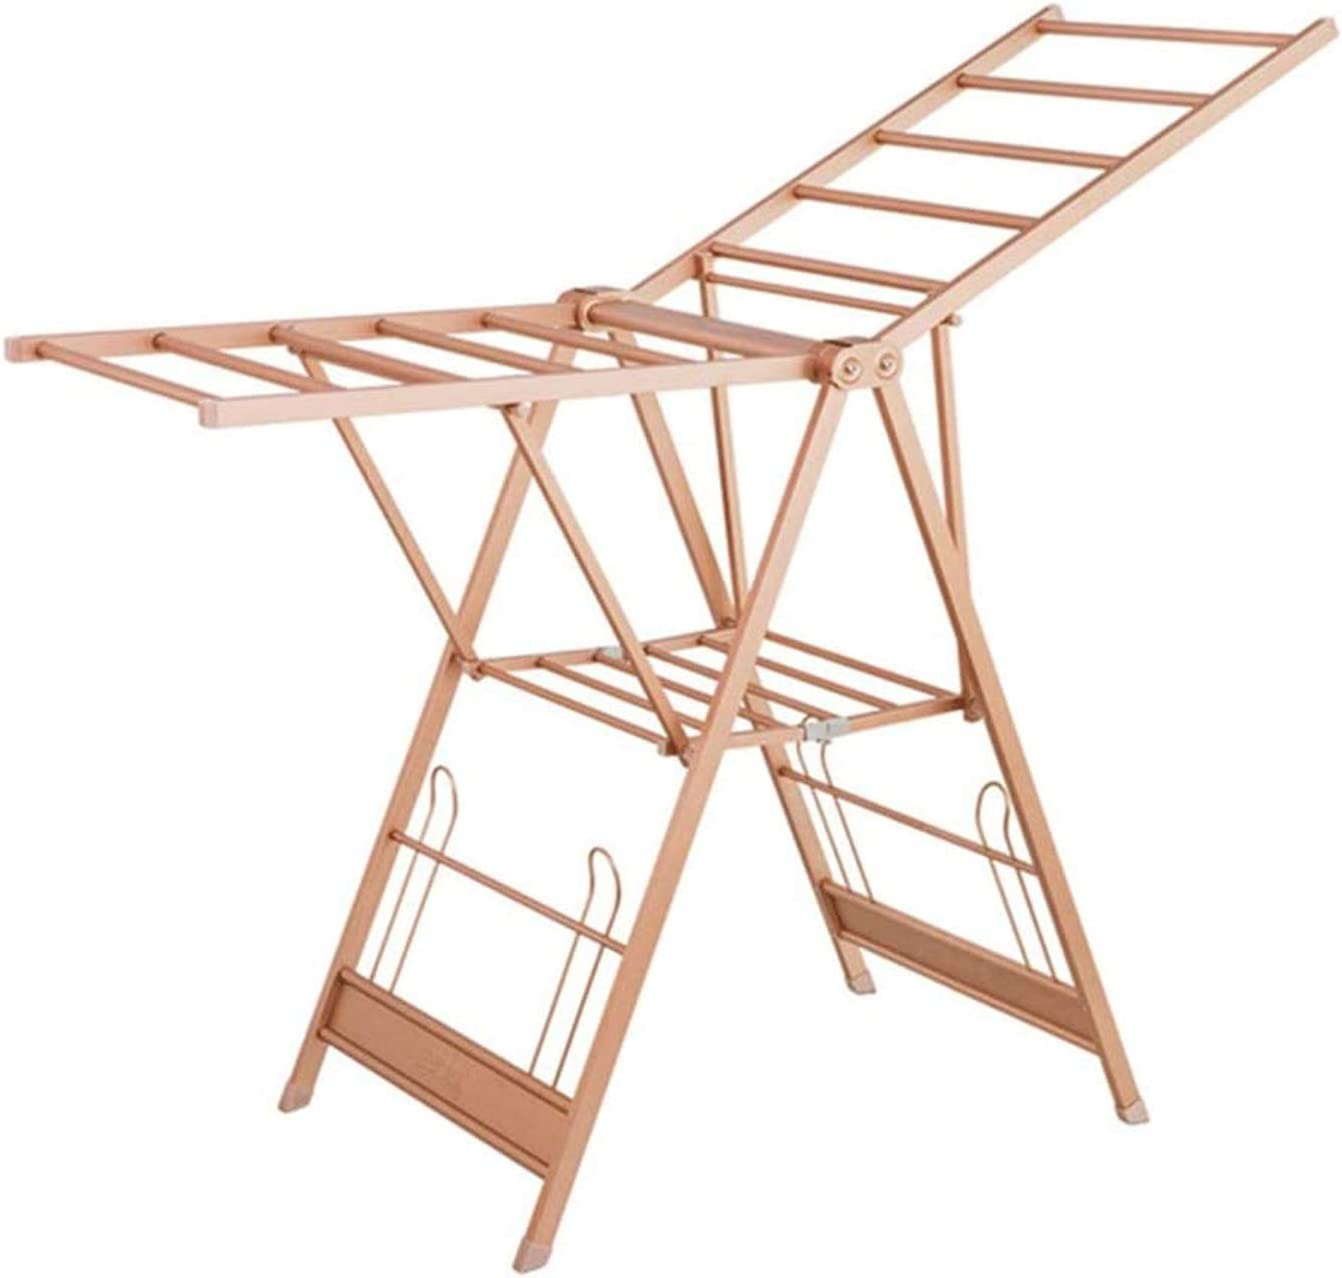 Clothes Drying Rack Max 50% OFF Laundry Storage Topics on TV Alum Products Folding Winged